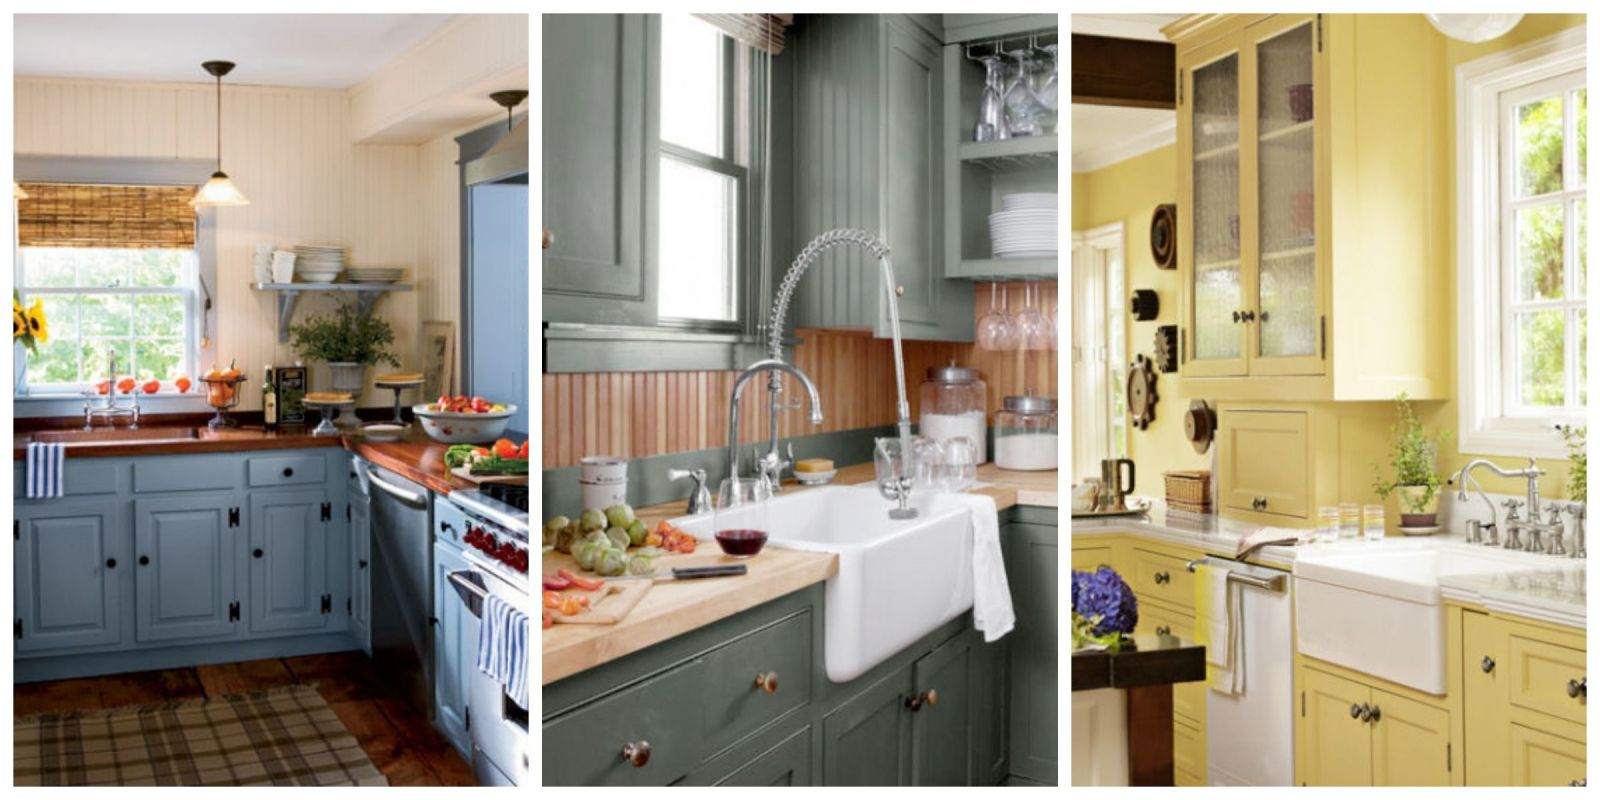 Kitchen Paints Colors 15 Best Kitchen Color Ideas Paint And Color Schemes For Kitchens